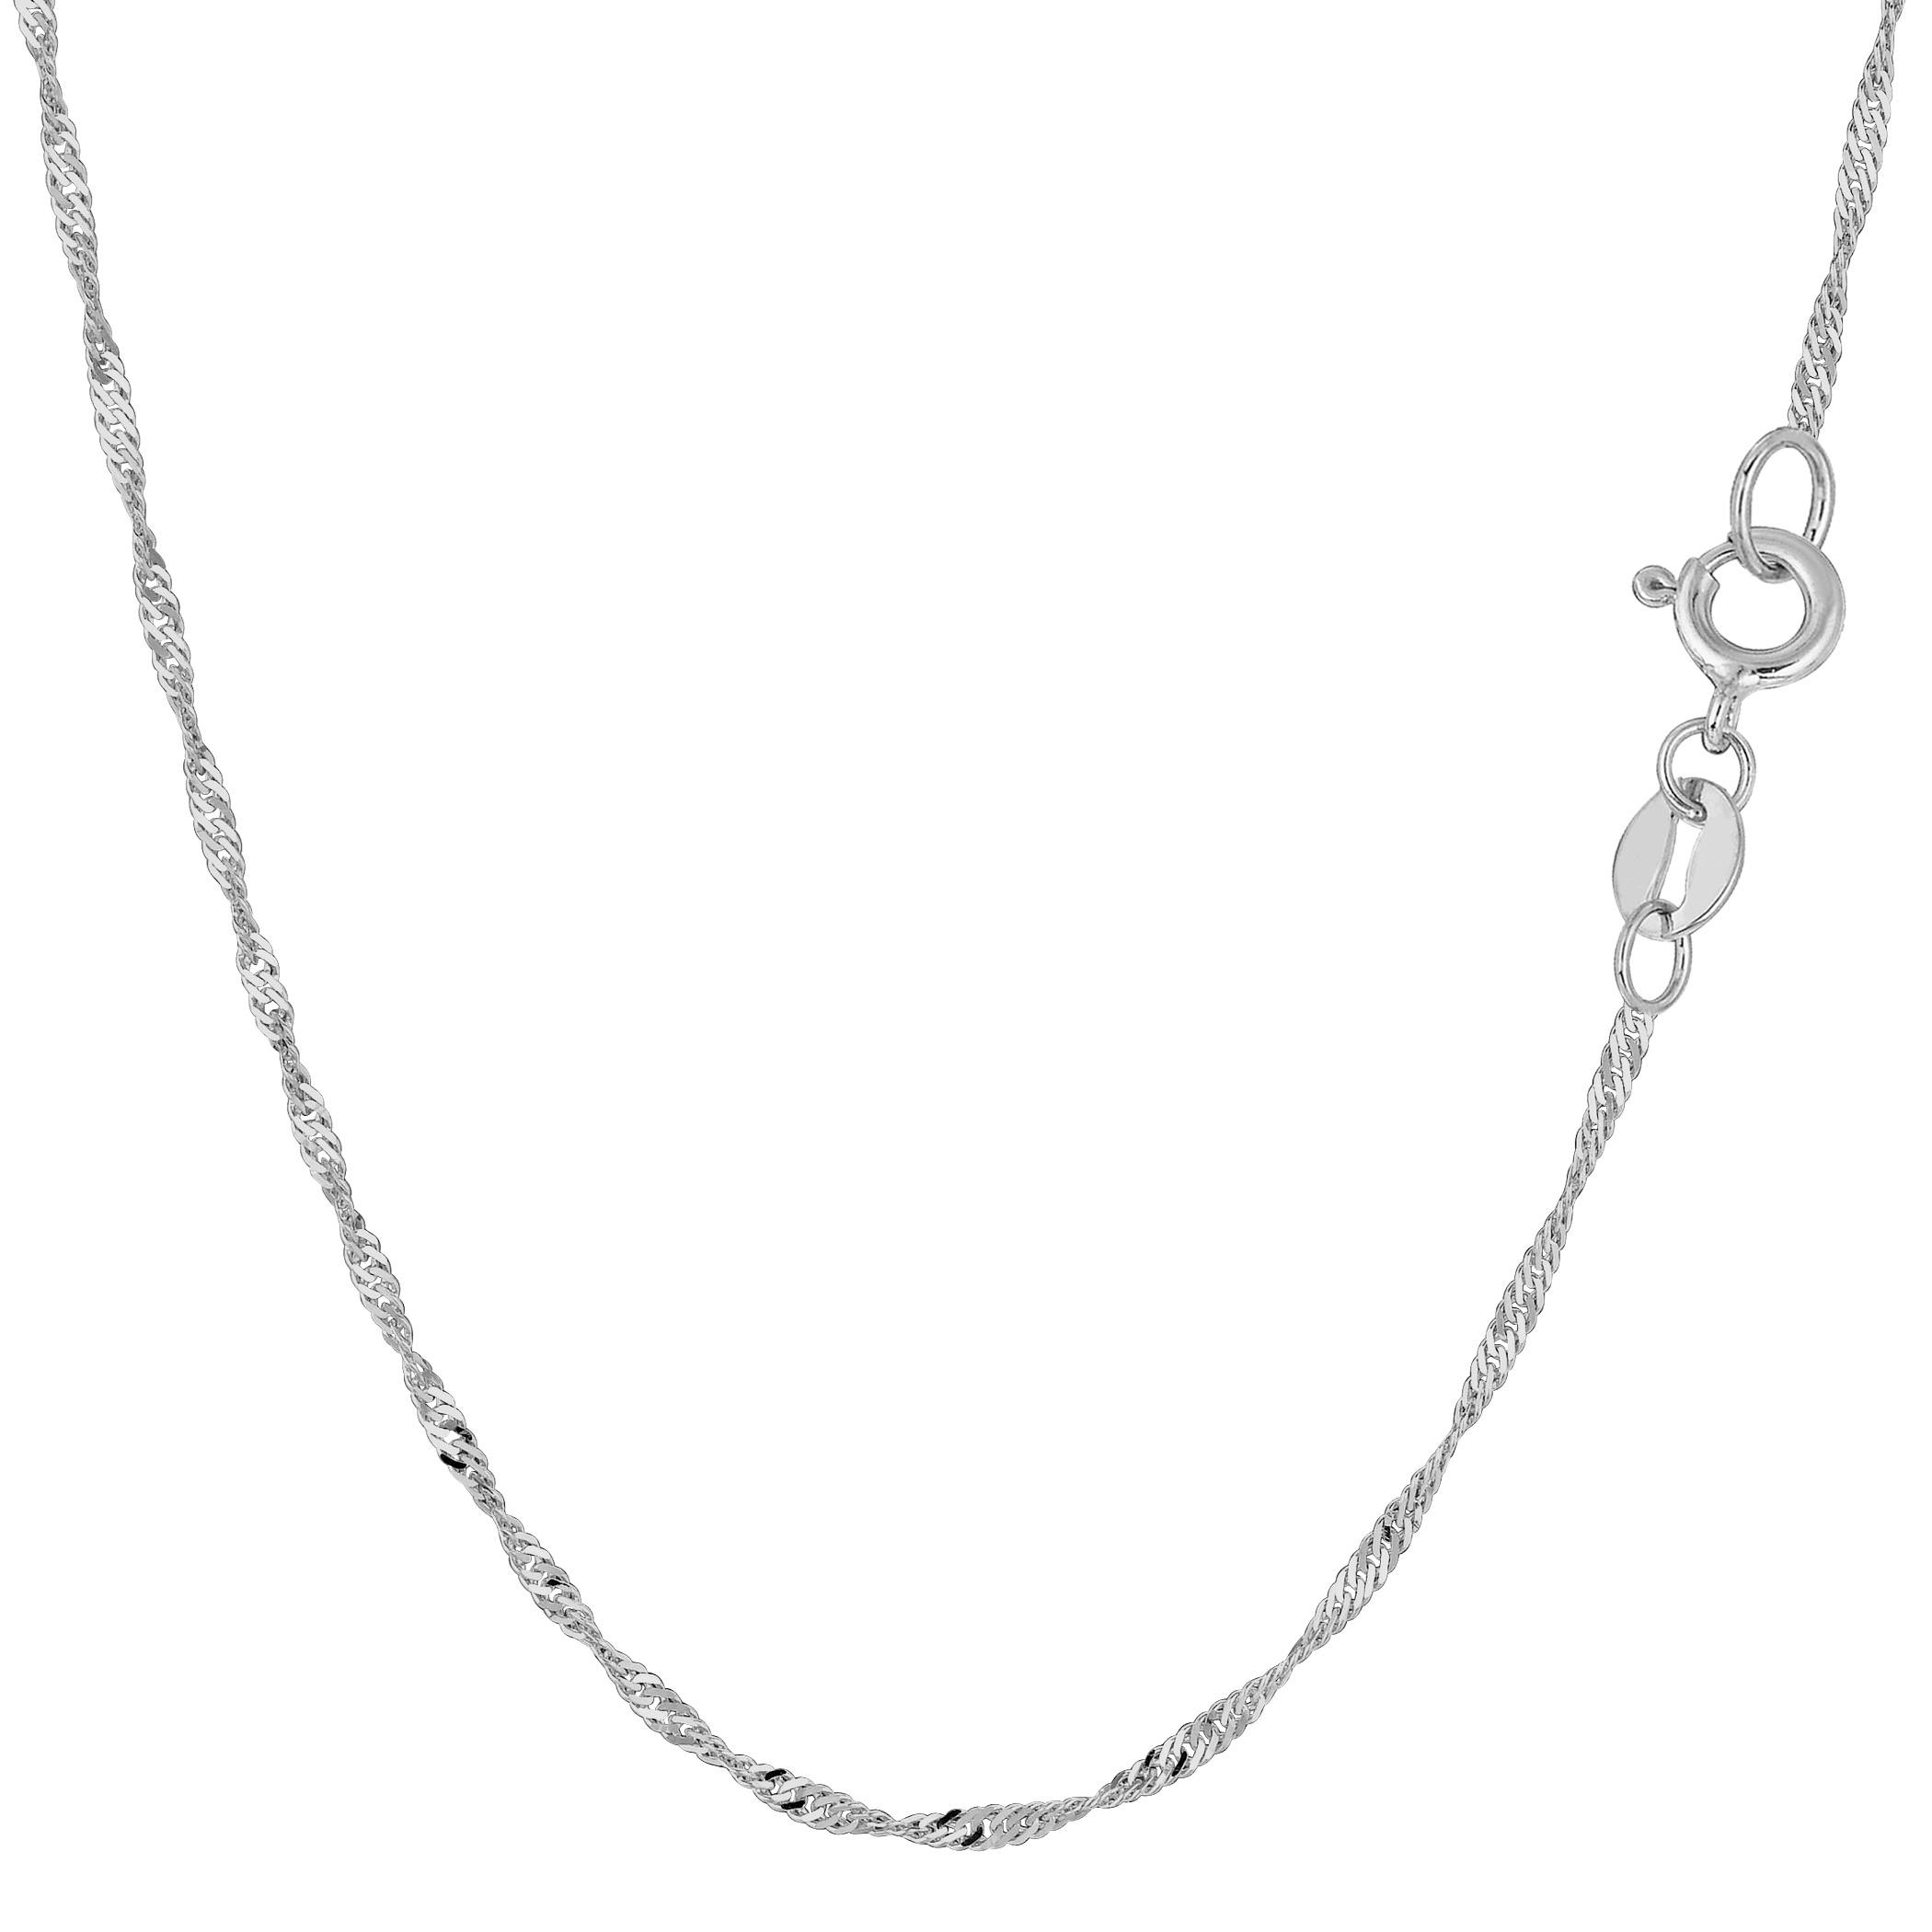 14k White Gold Singapore Chain Bracelet, 1.5mm, 10″